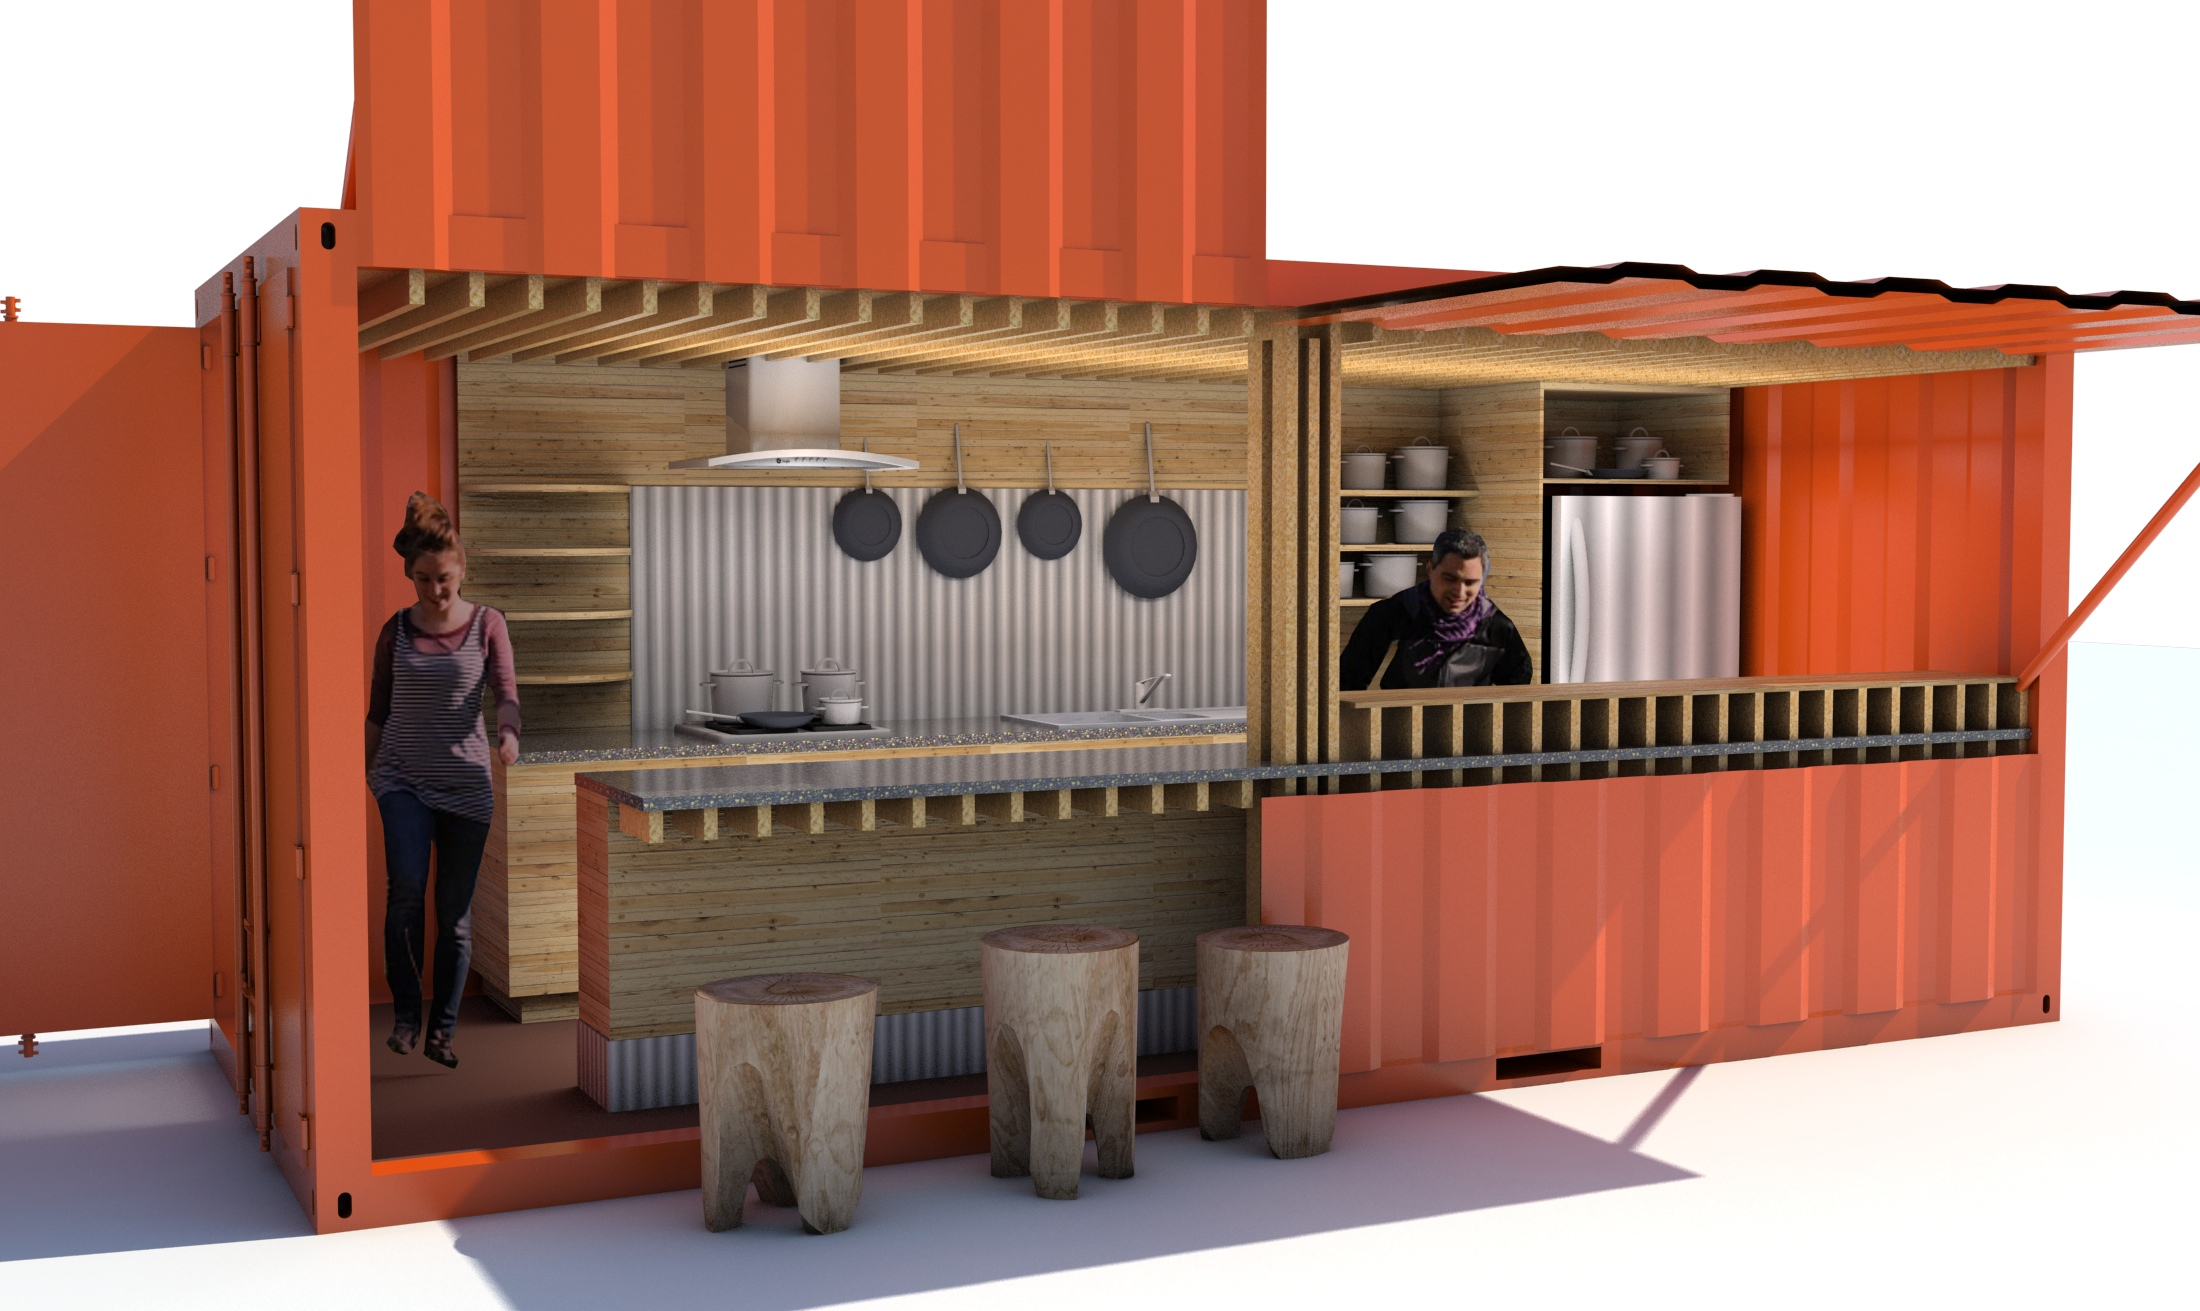 Denver S Most Anticipated New Restaurants Food Halls And Bars Of 2015 Zagat